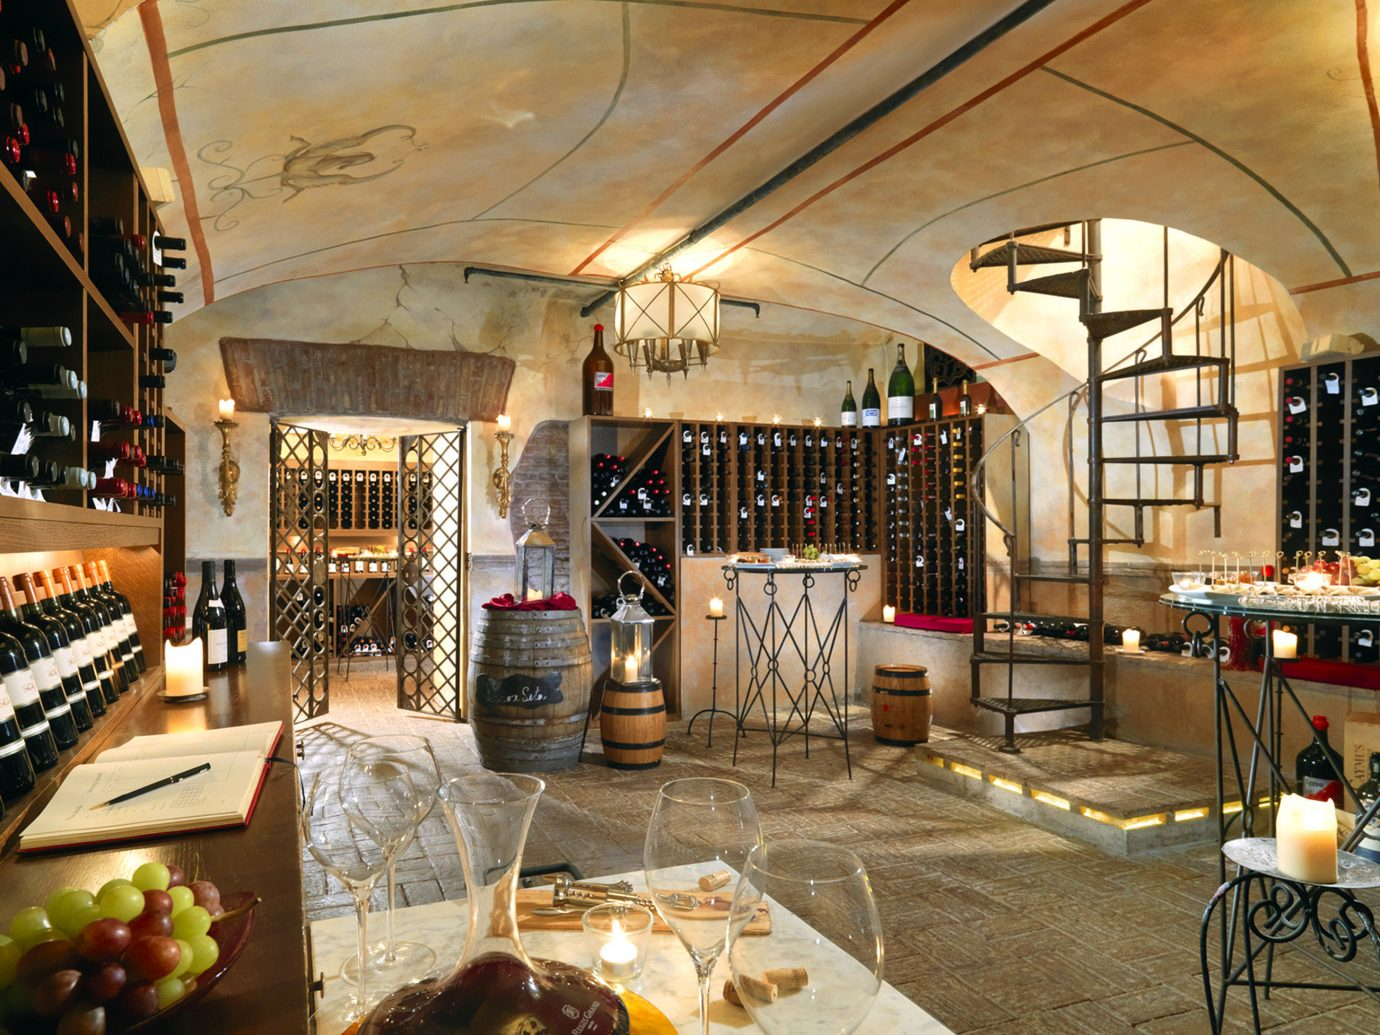 Bar Boutique Hotels City Drink Italy Luxury Luxury Travel Romantic Romantic Hotels Rome table indoor Lobby restaurant Boutique retail interior design shopping mall shopping Design fresh